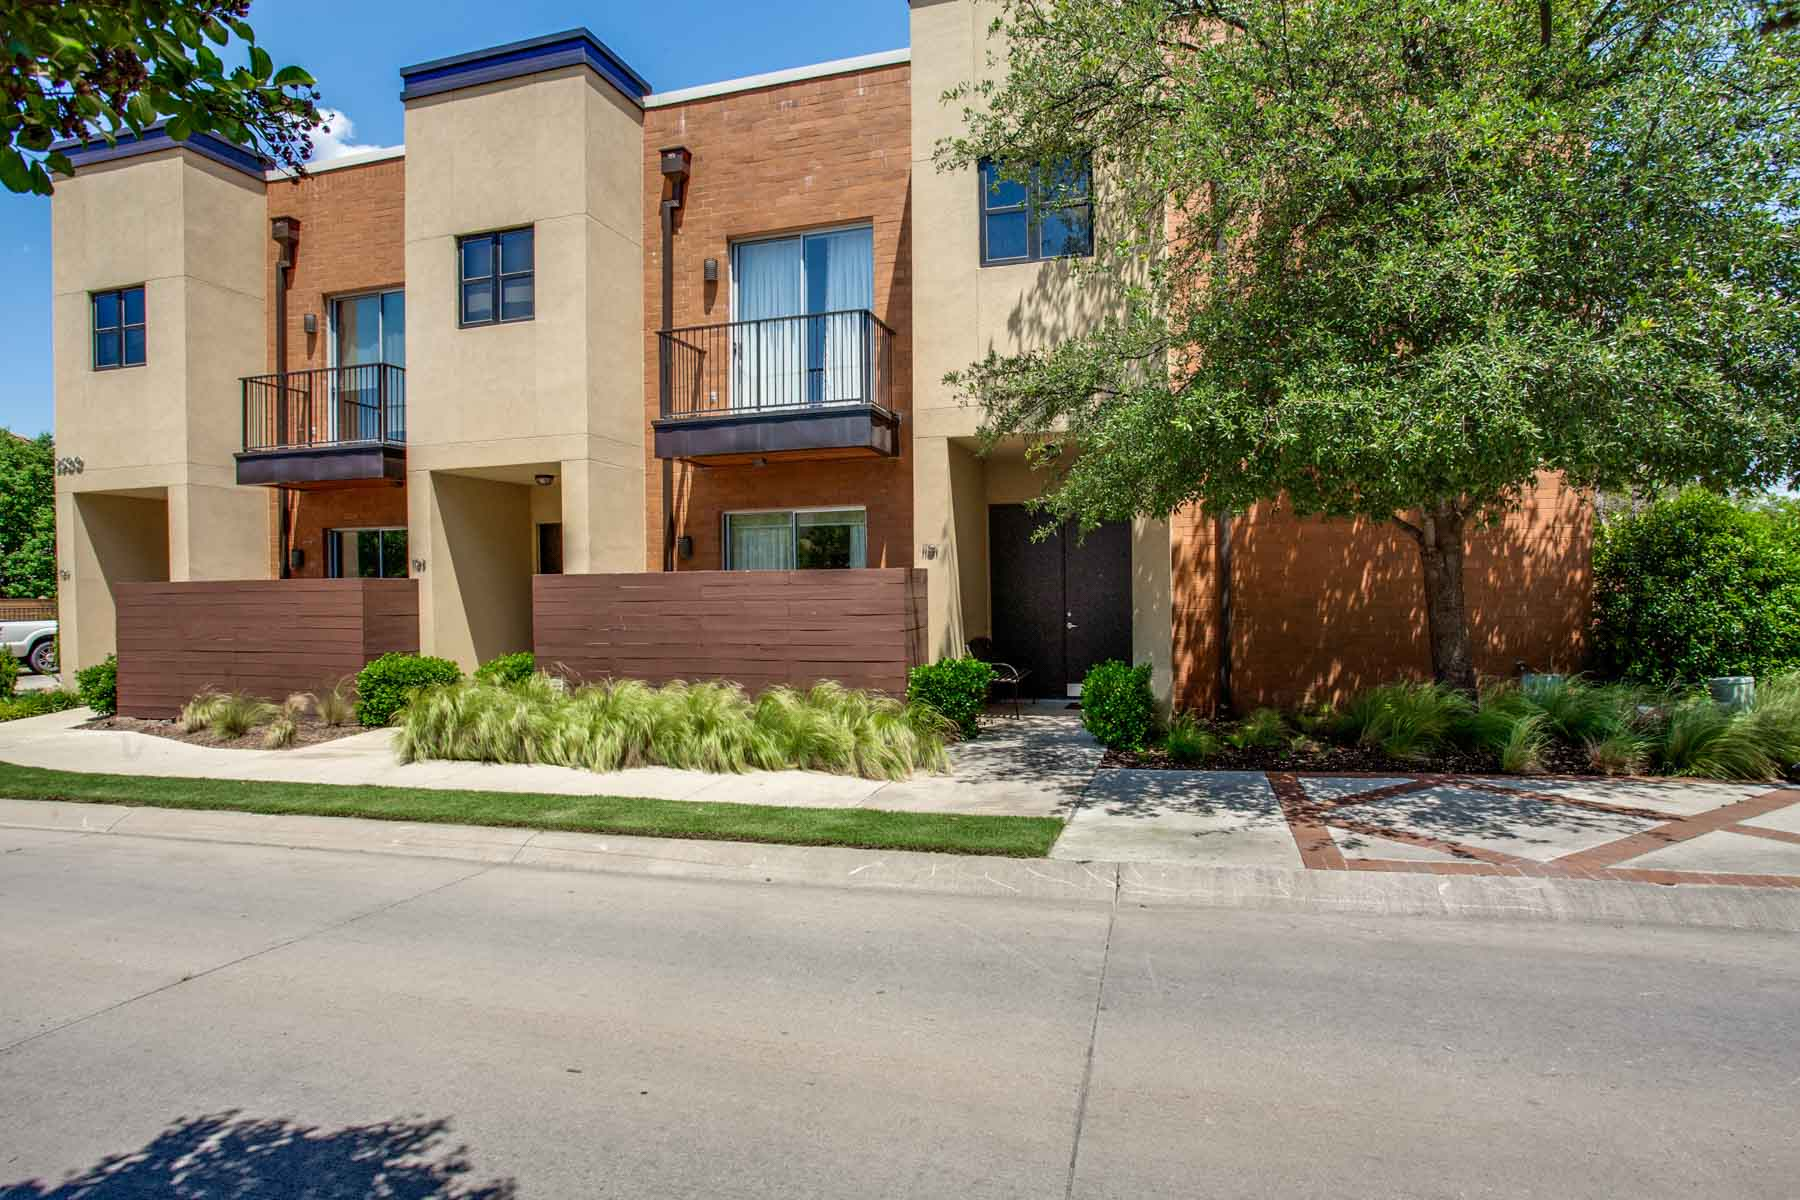 Condominium for Sale at Arthouse Condo in Fort Worth 2600 Museum Way 1101 Fort Worth, Texas, 76107 United States